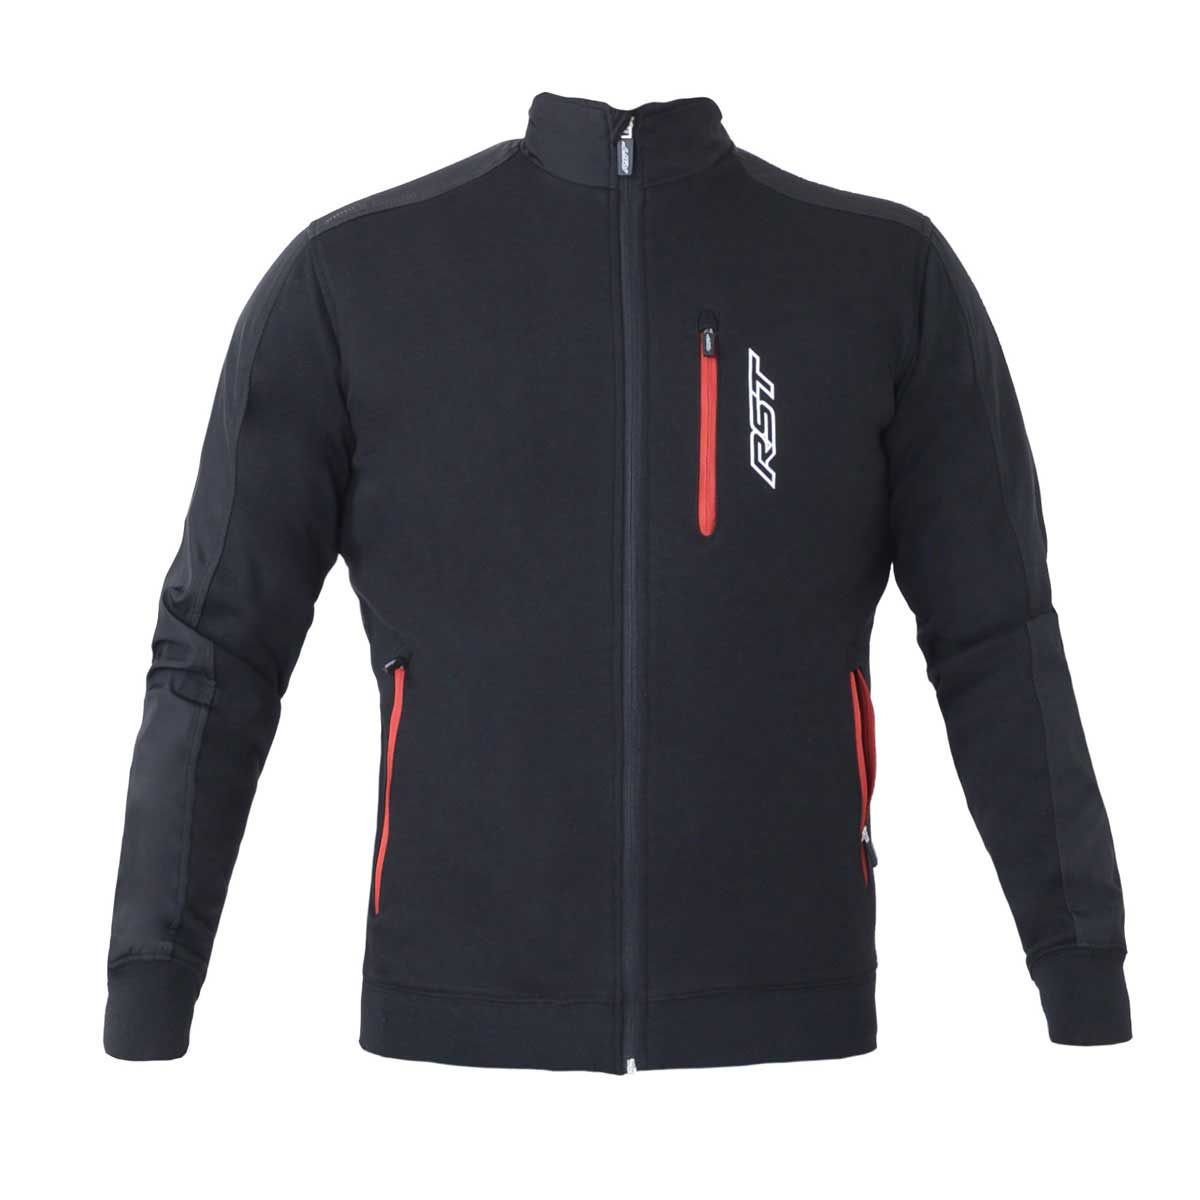 RST Casual Full Zip Technical Jacket Black